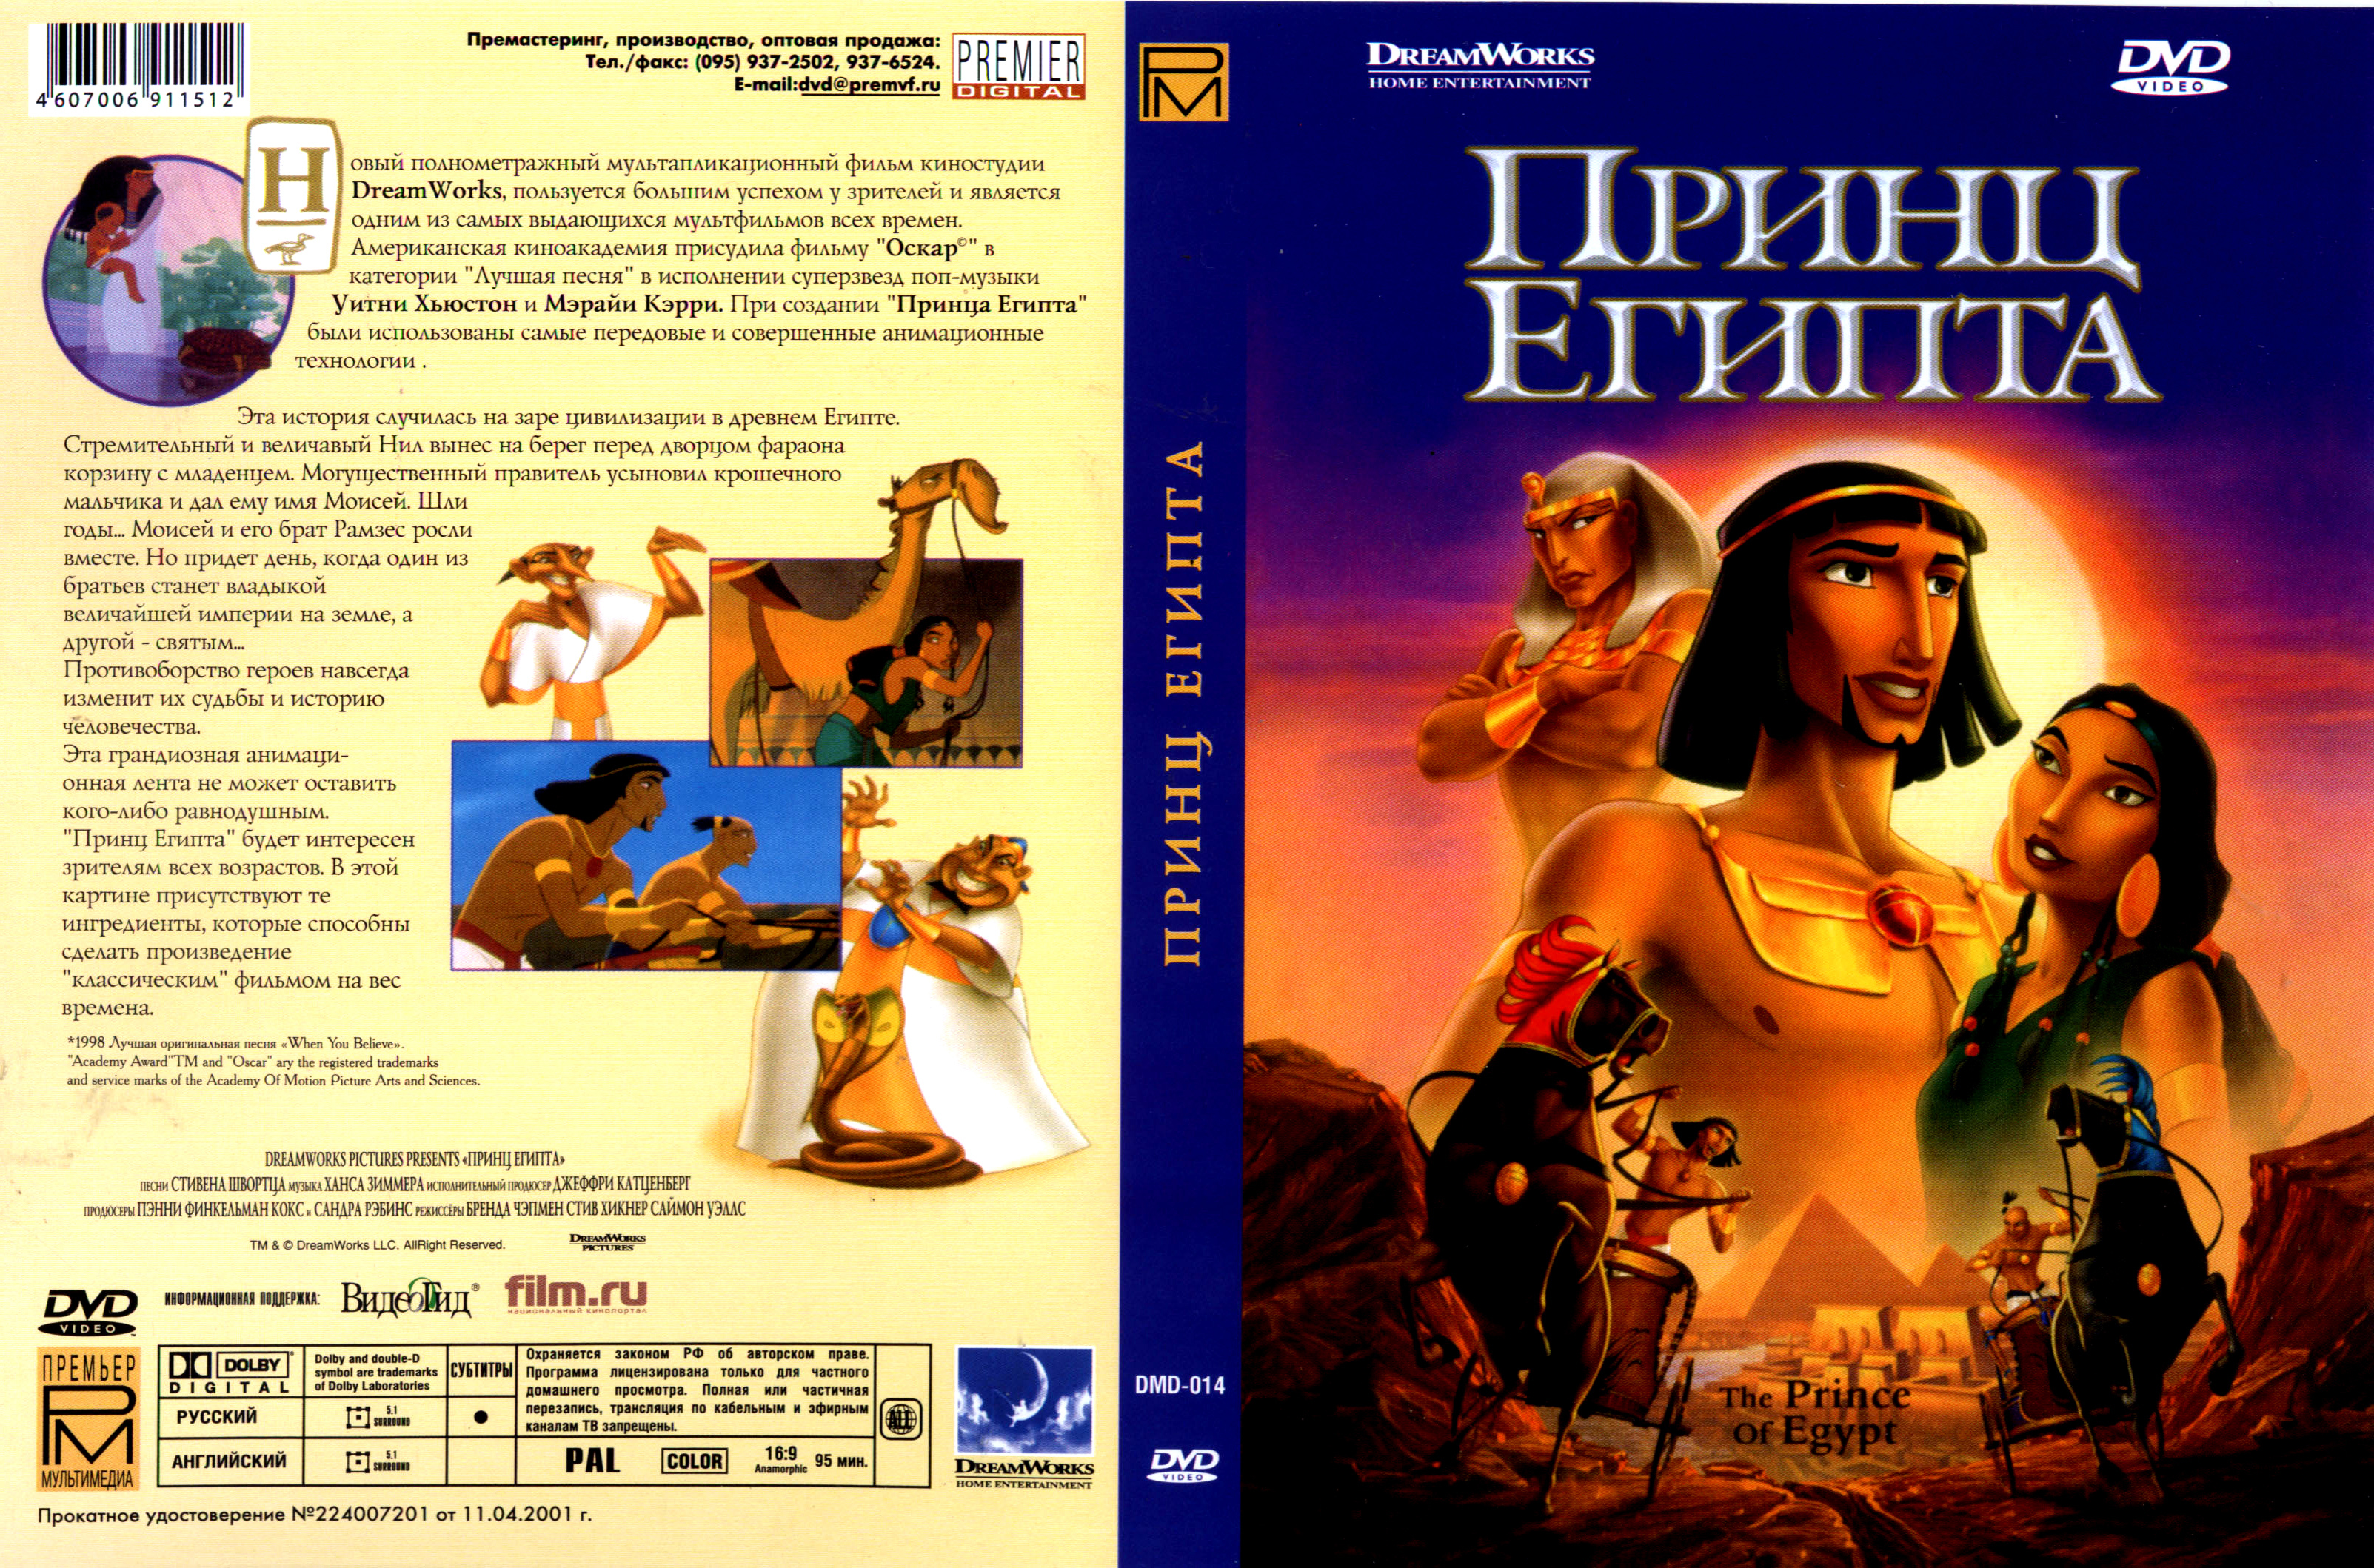 a critical analysis on the movie the prince of egypt Dreamworks's prince of egypt was released in theaters in 1998, a movie based on the exodus bible story of moses.